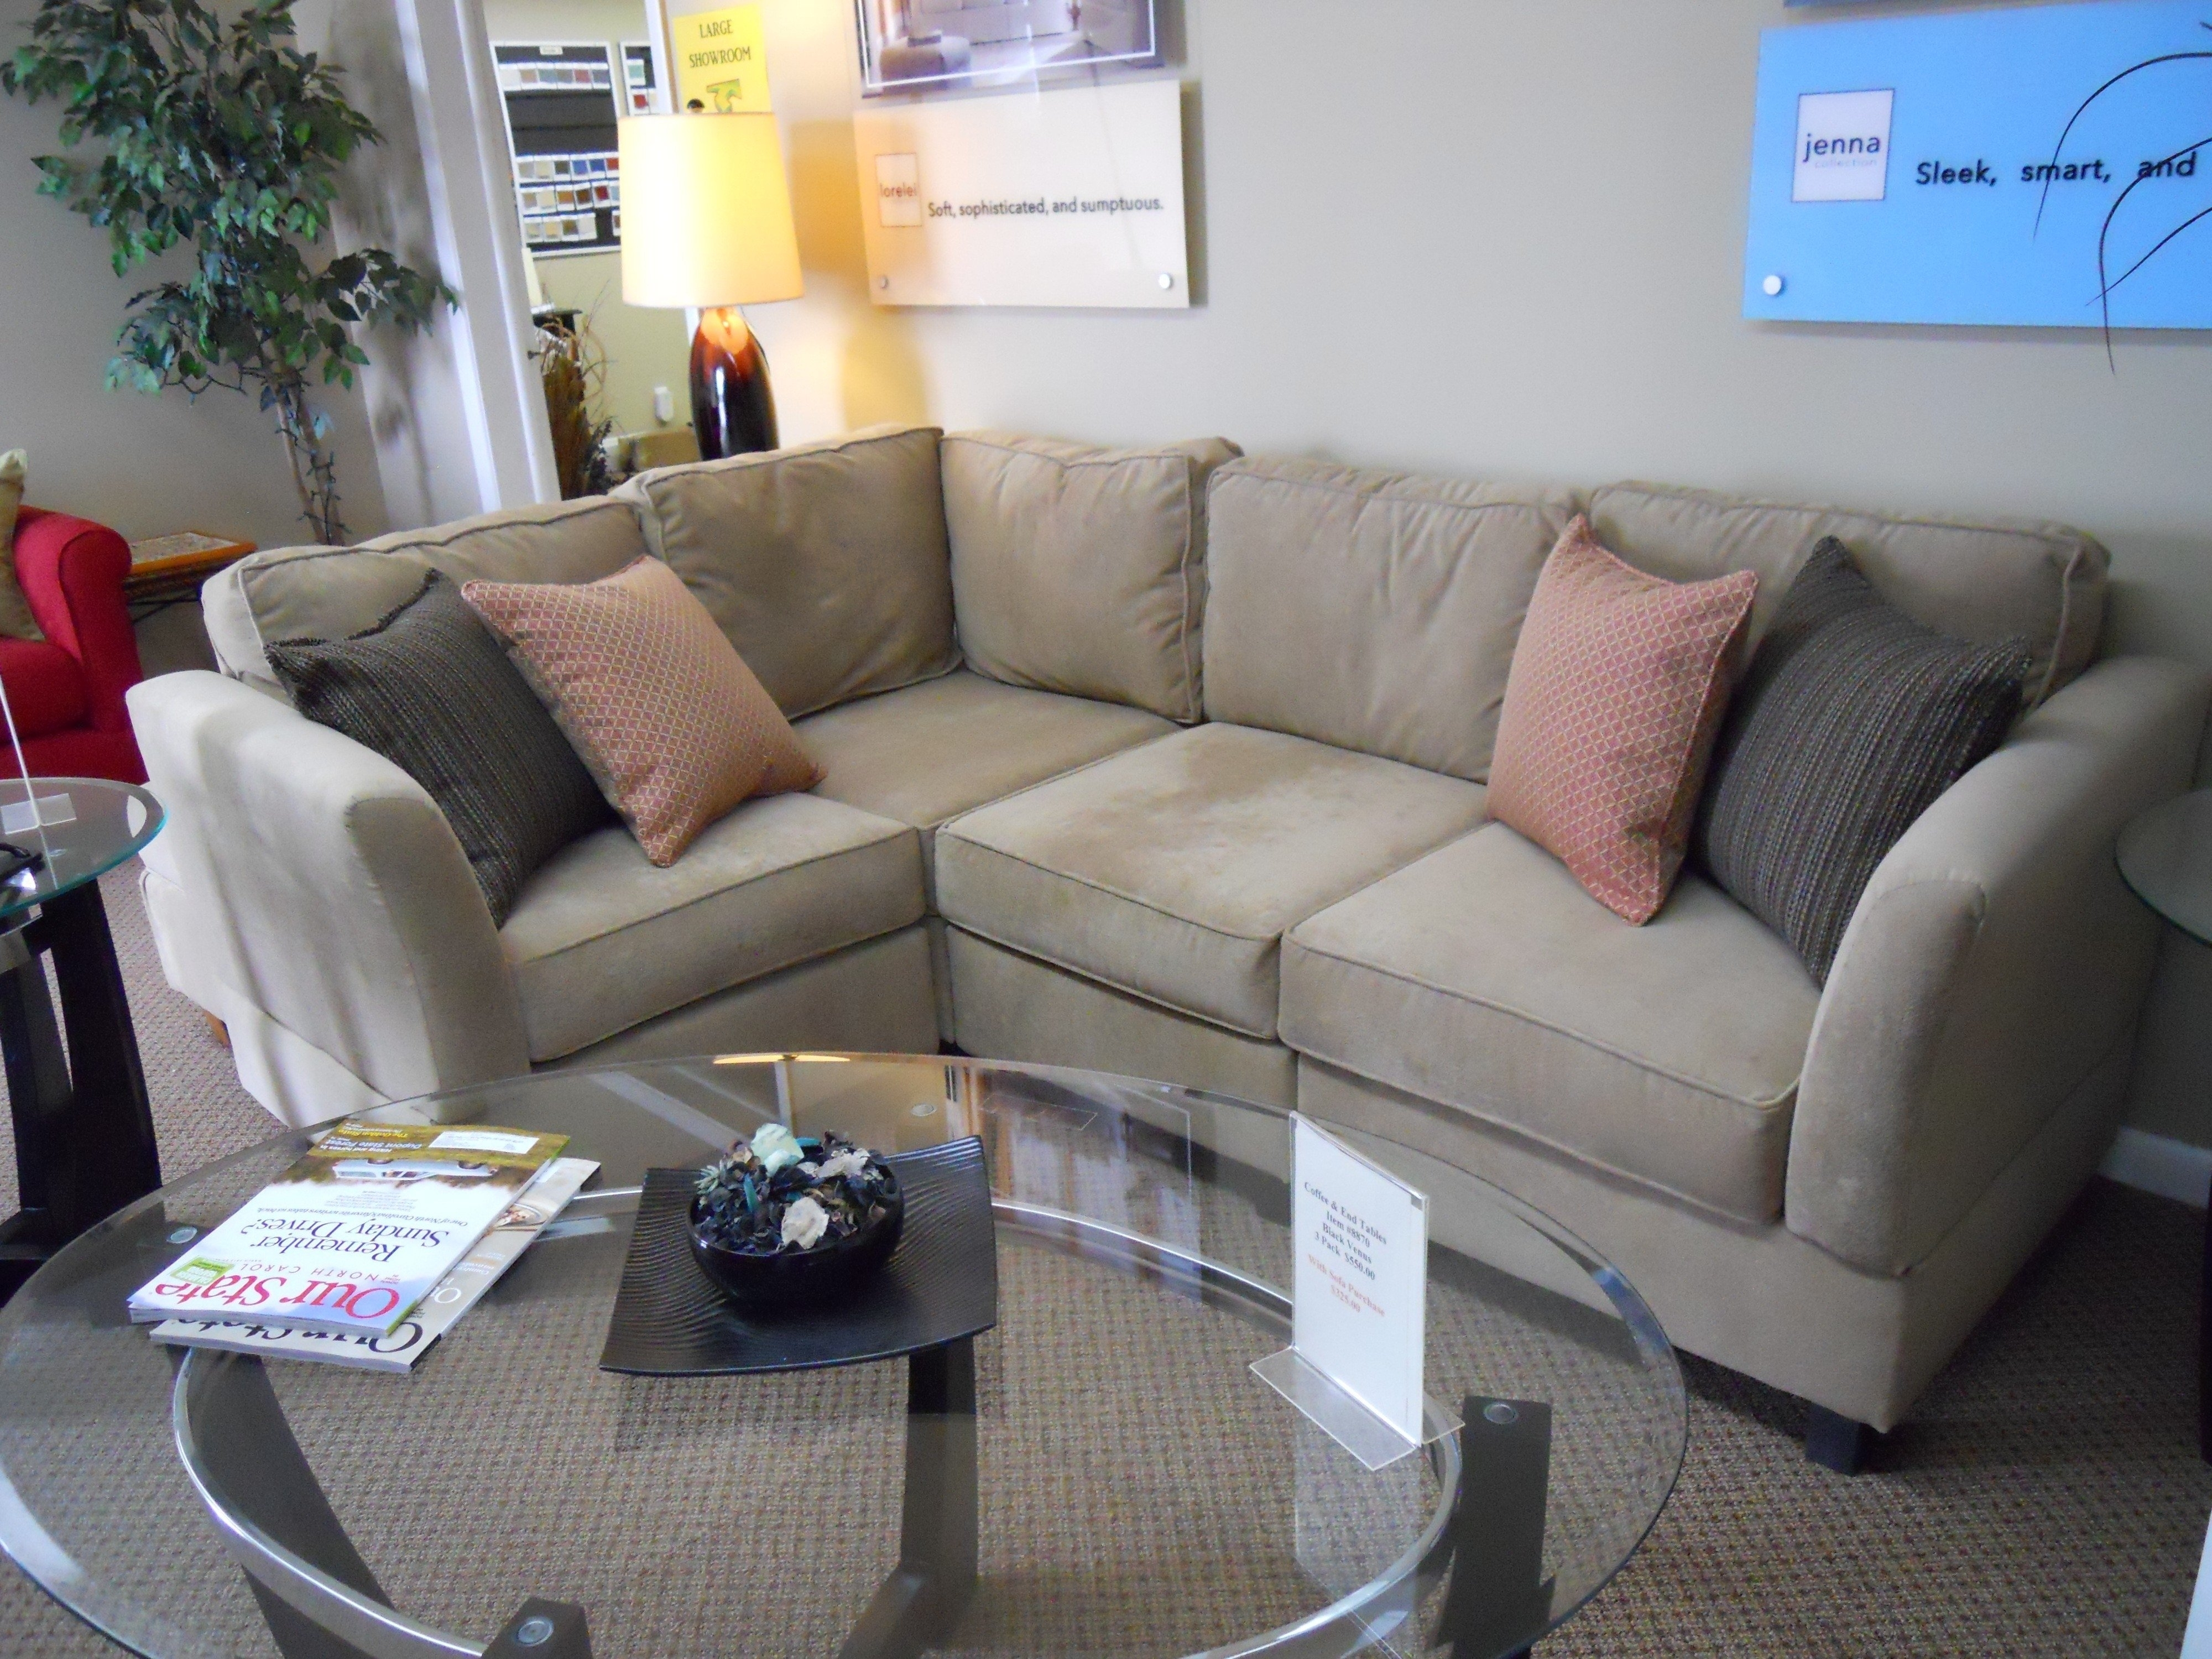 Reclining Sectional Sofas For Small Spaces W Script With Small Pertaining To Small Spaces Sectional Sofas (View 4 of 10)